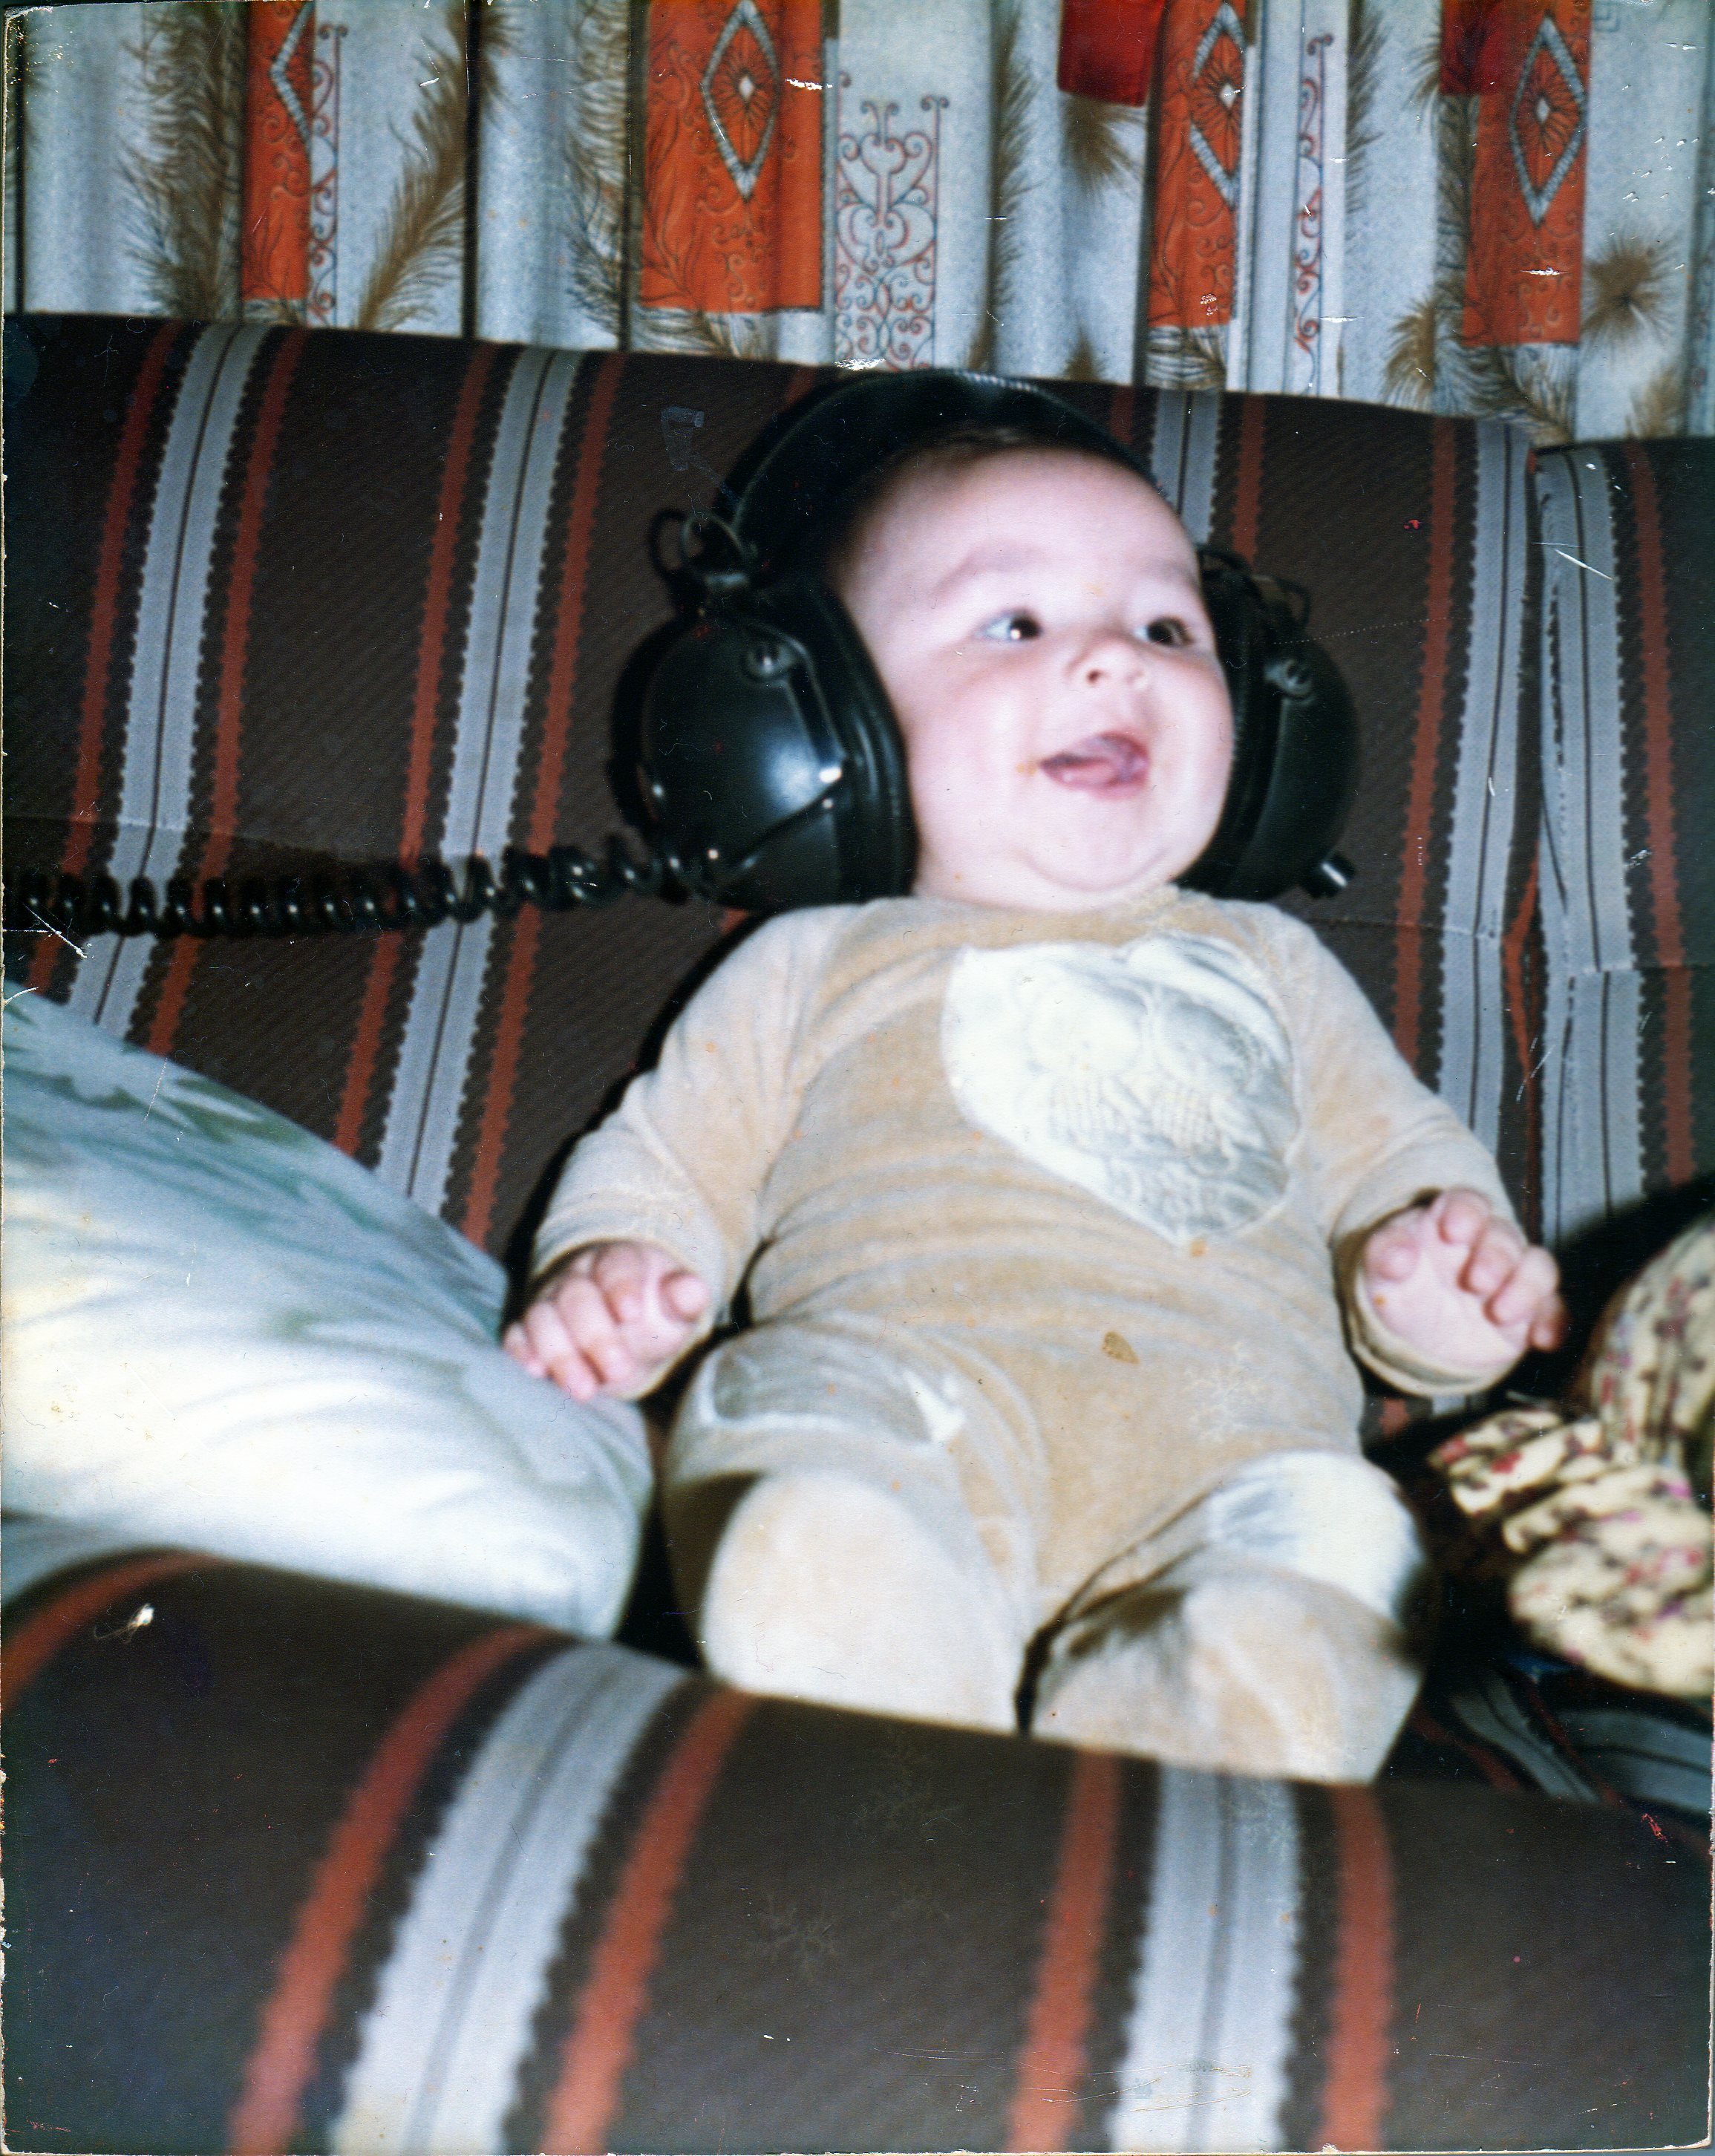 Eduardo_headphones_1982